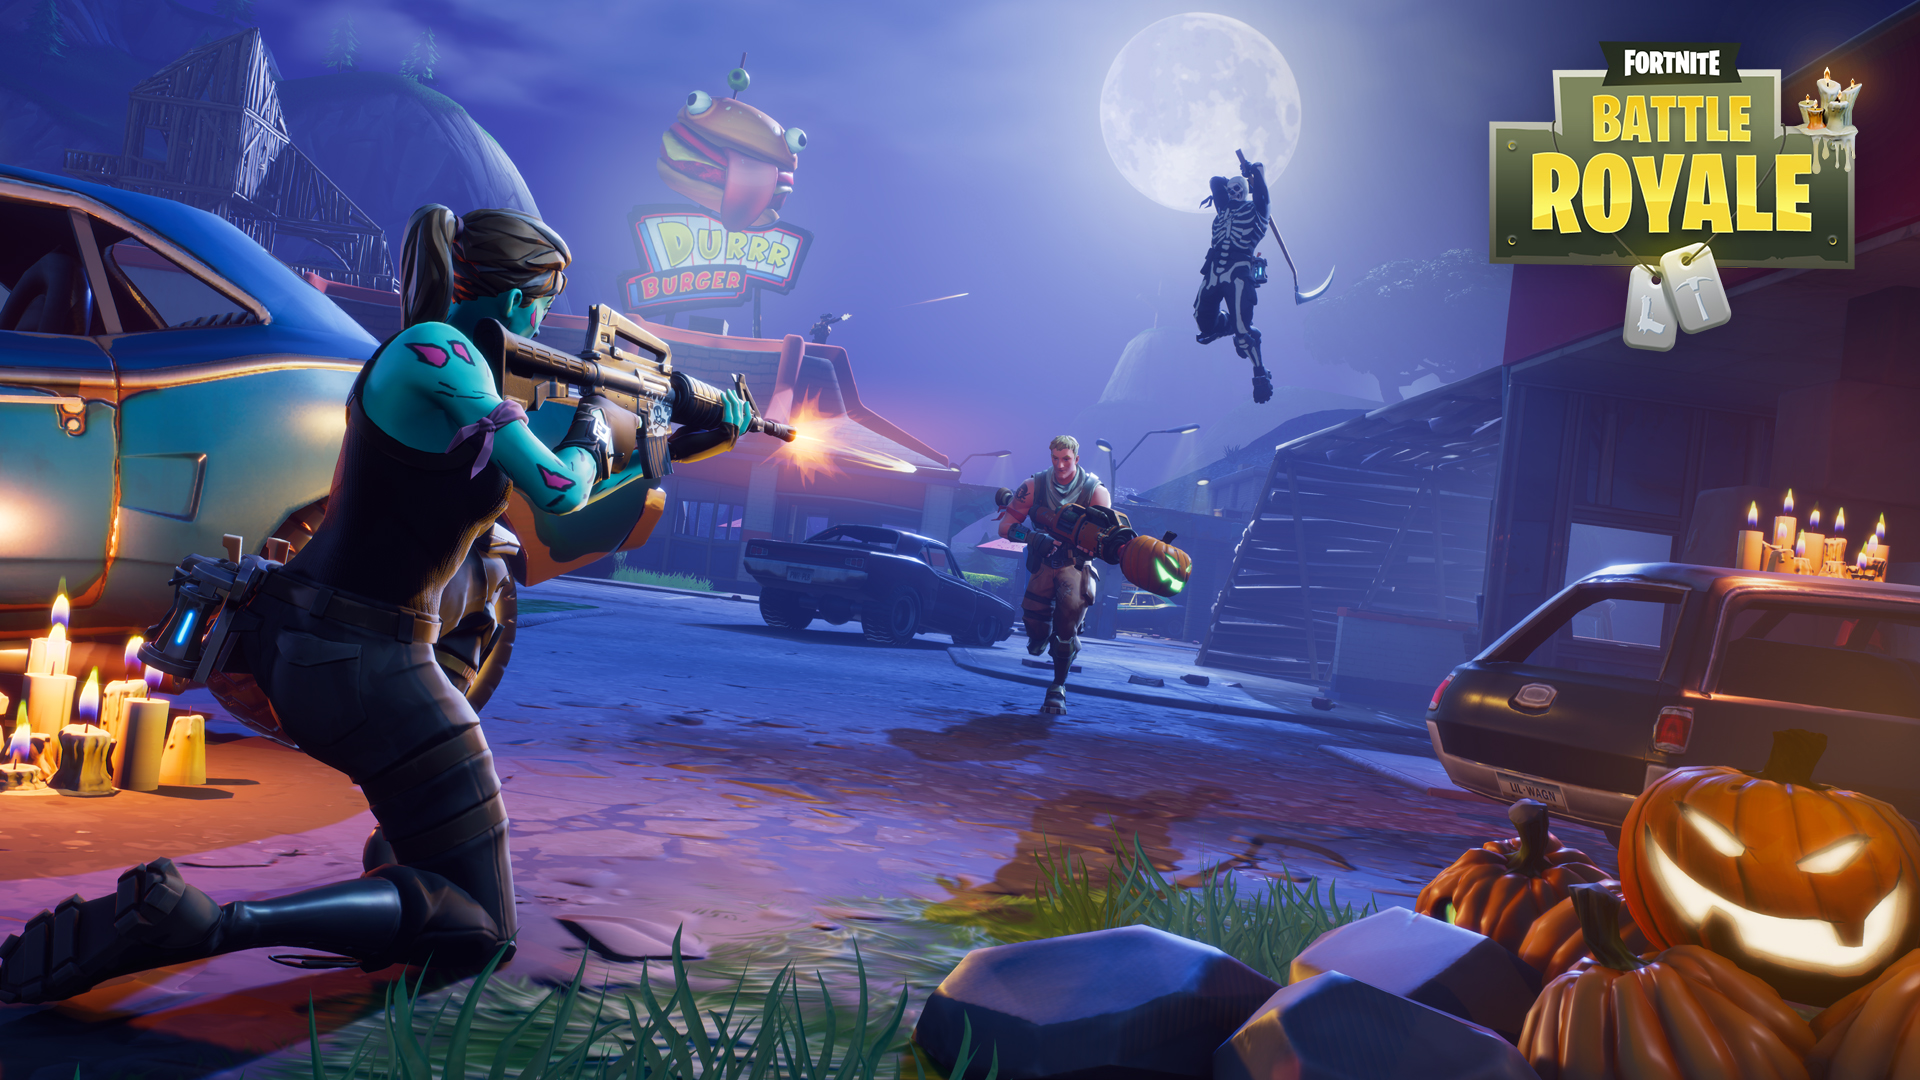 'Fortnite: Battle Royale' Season 3: Skydiving Trails with Iron Man like effect